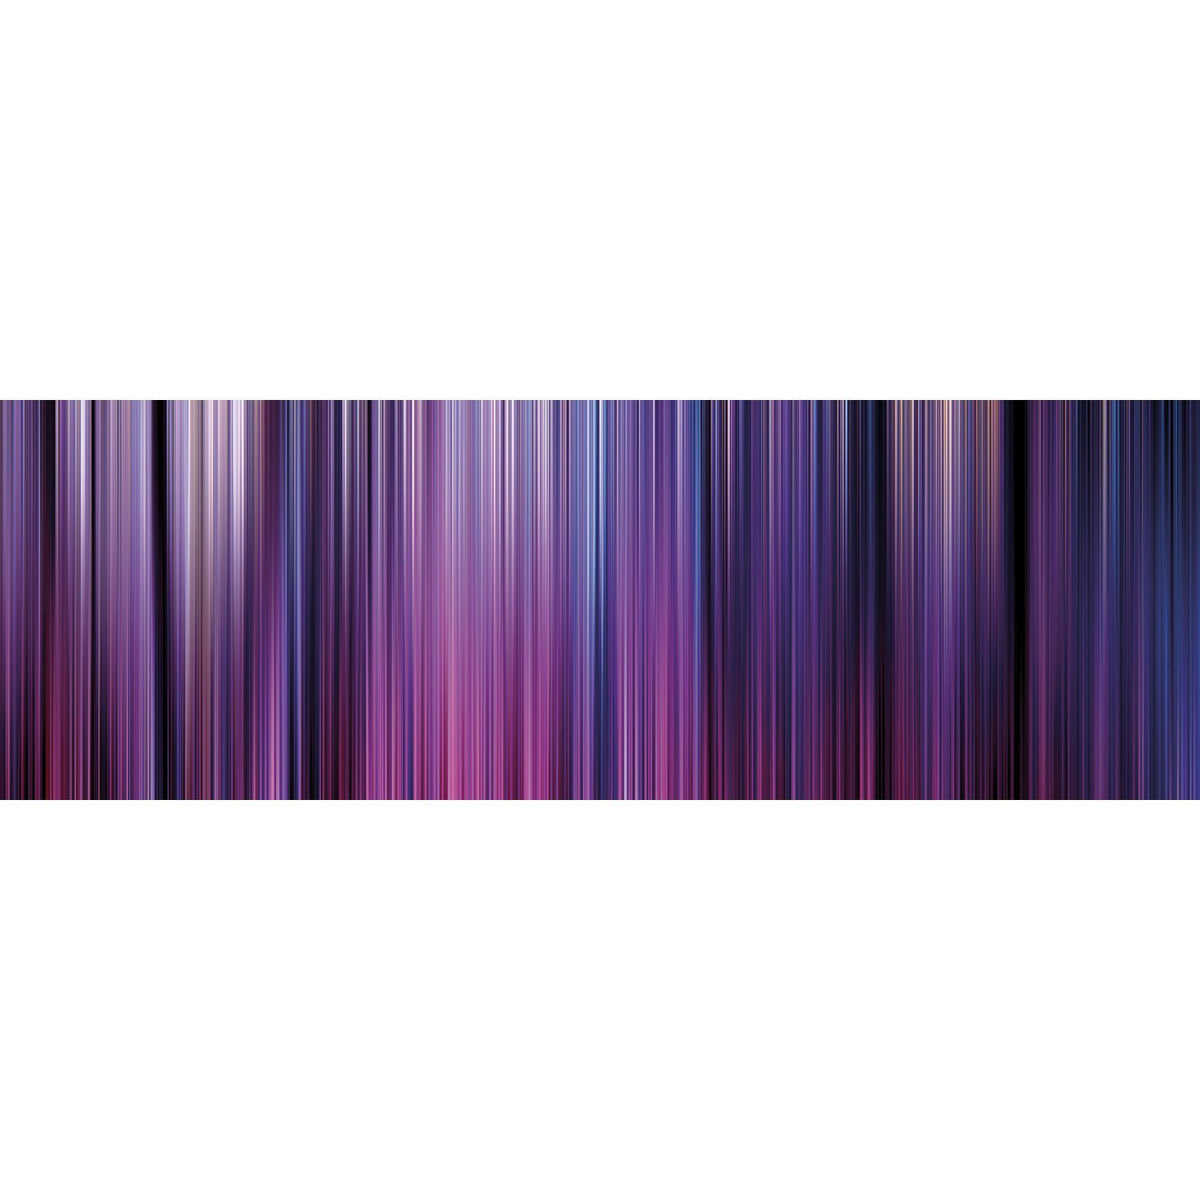 Wall Acoustics Full Size Mural Muffle Abstract Mural - Kinetic Purple Full Size Mural